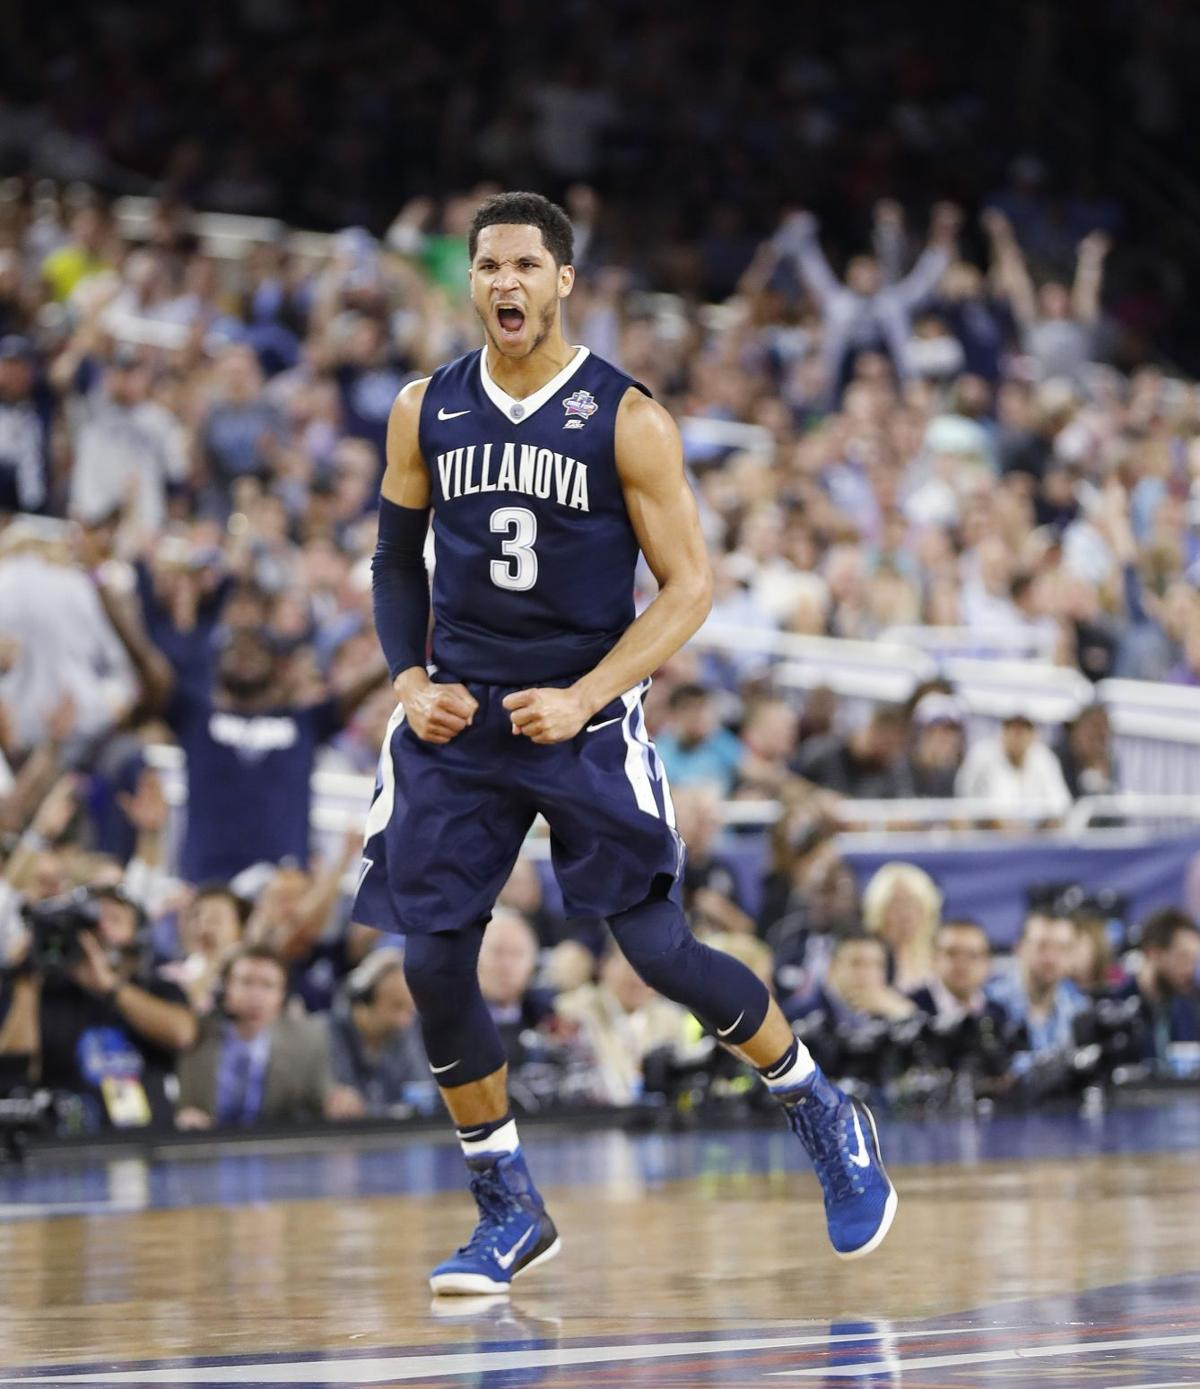 Villanova advances to third title game after rout of Oklahoma